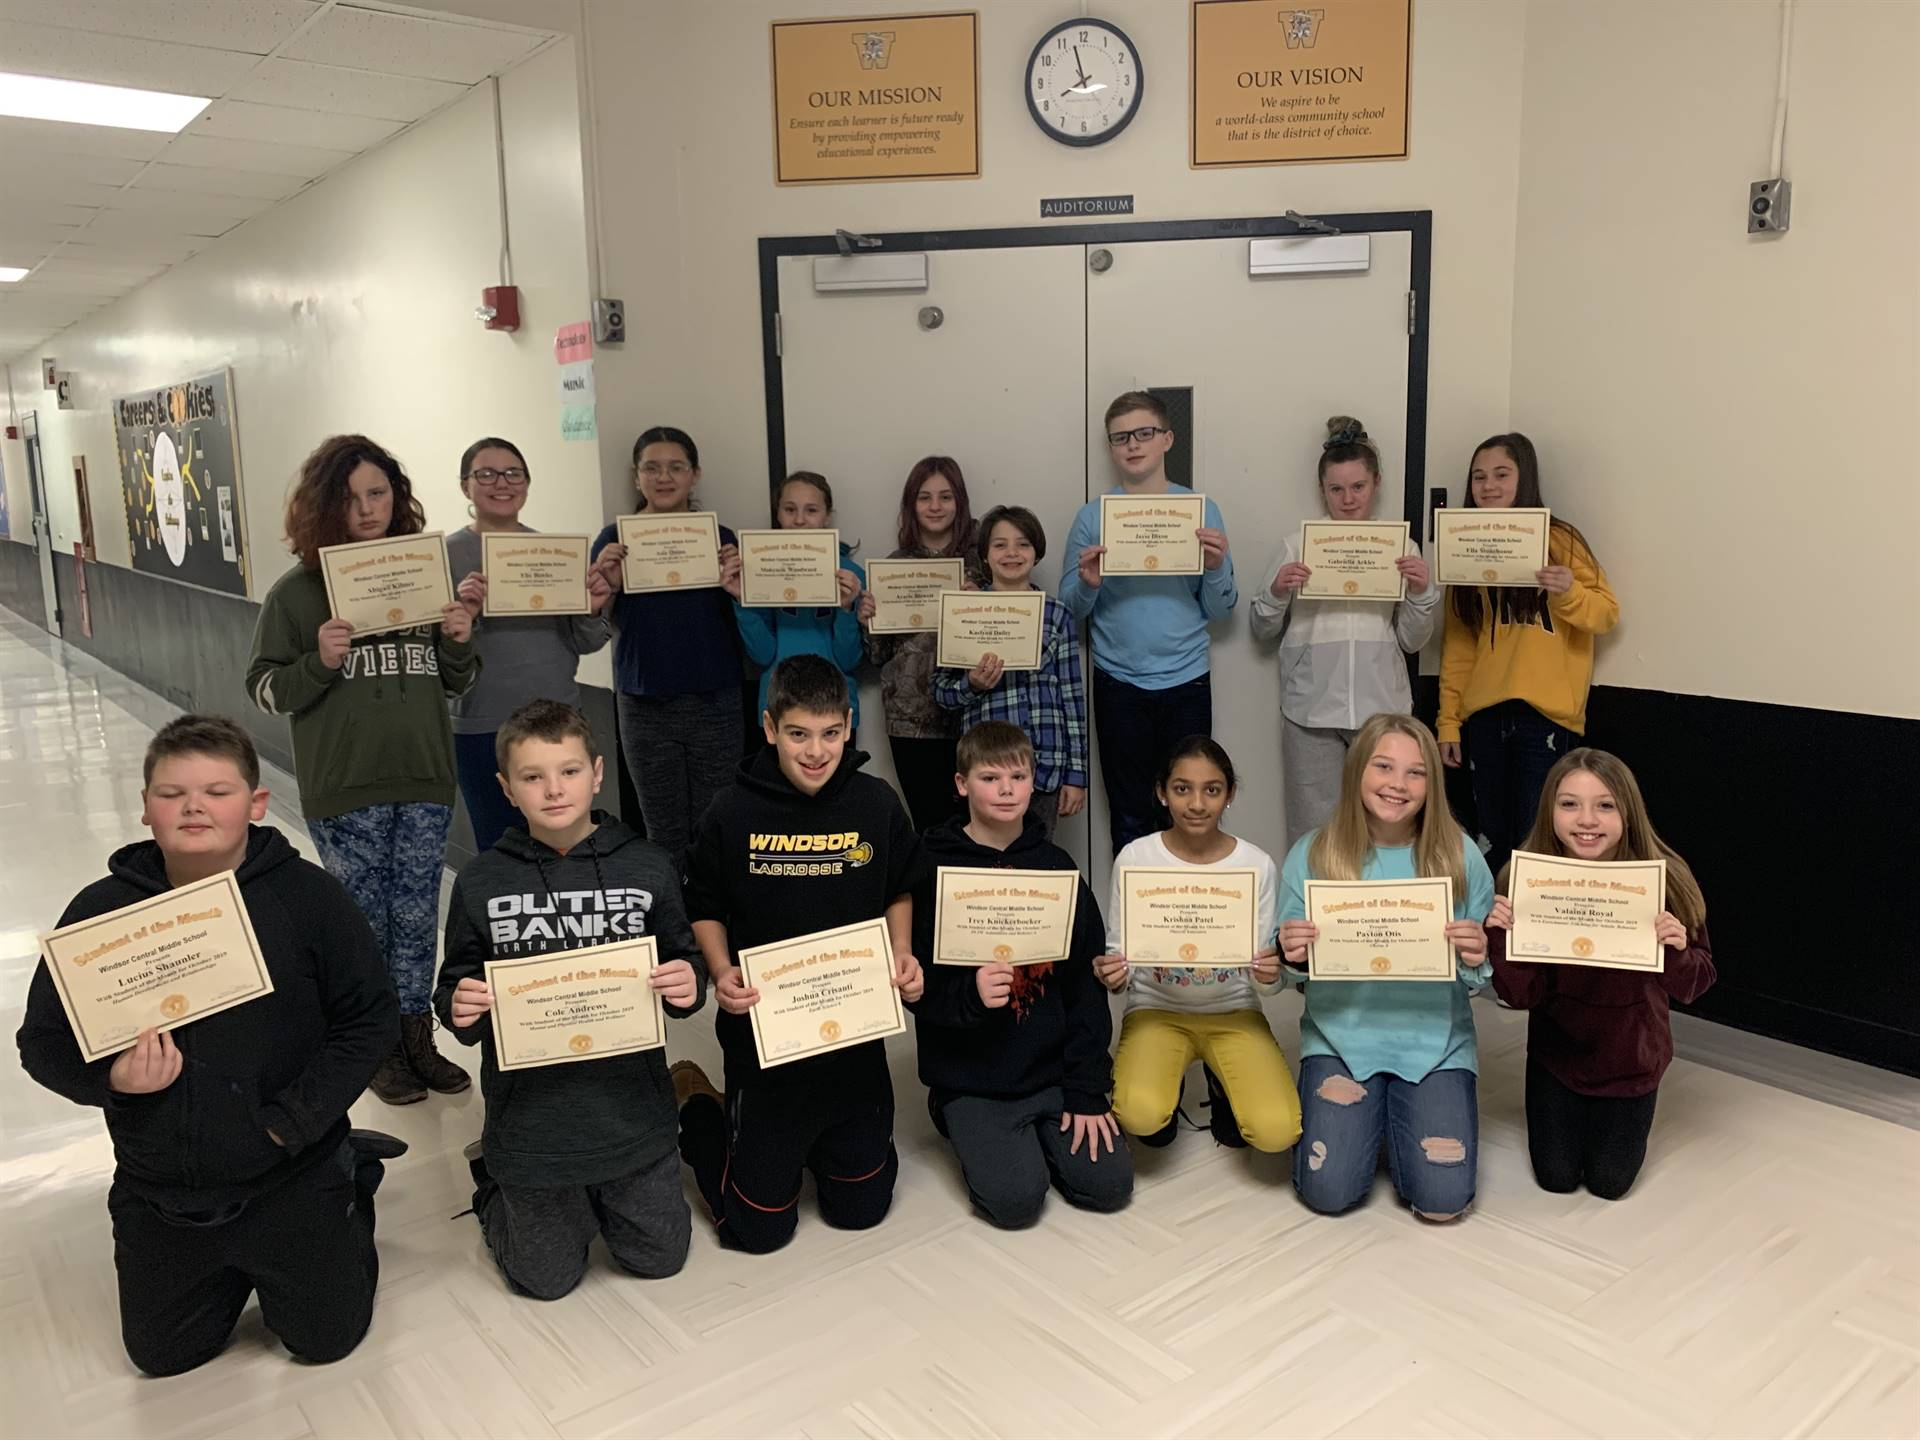 16 students holding certificates in a hallway